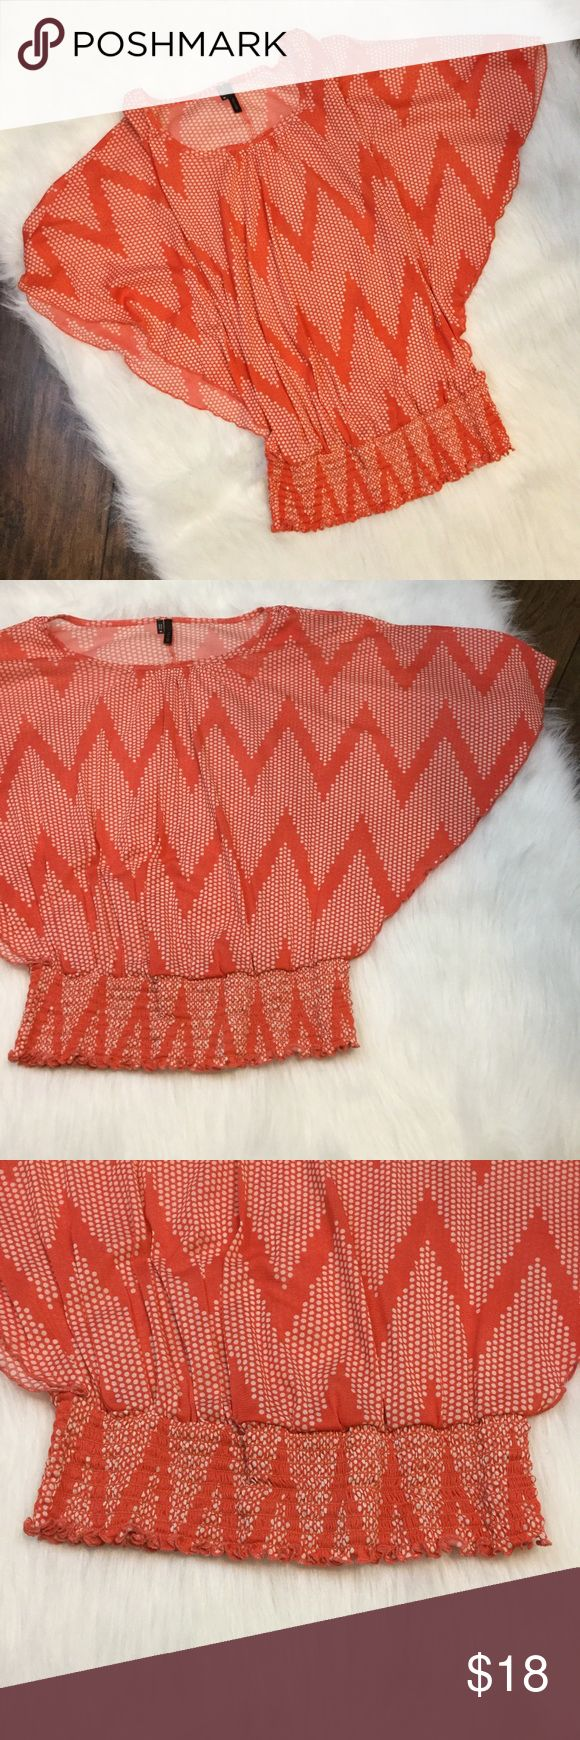 Orange and white batwing top Orange sheer batwing top with white dots that form a chevron print. Cinched bottom. The sleeves are cut all the way down to the cinched part. Maurices Tops Blouses